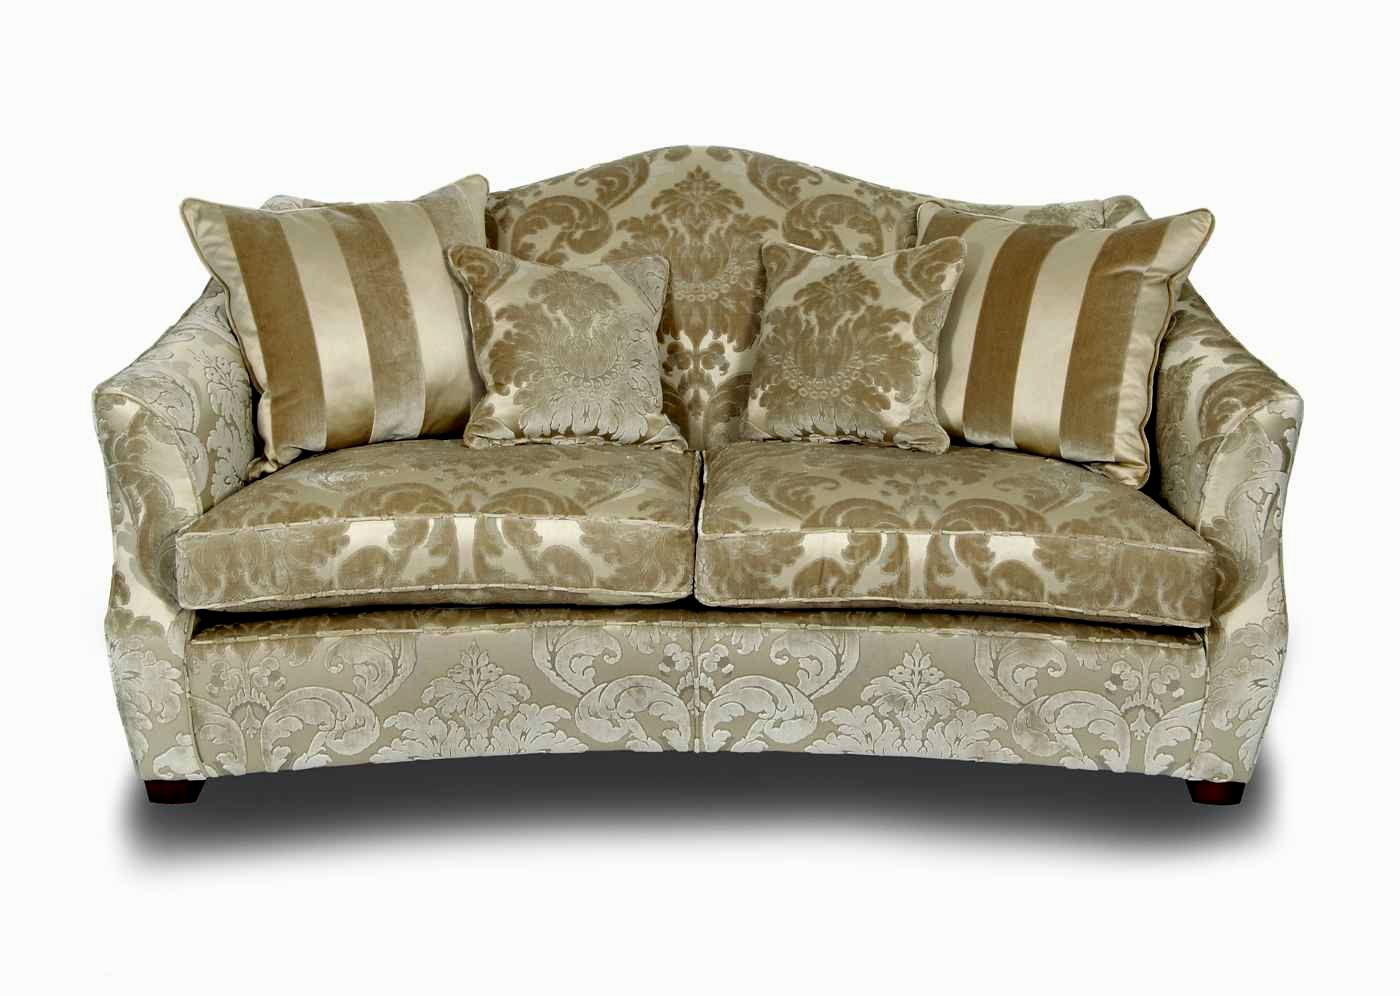 contemporary cheap leather sofas pattern-Wonderful Cheap Leather sofas Photo